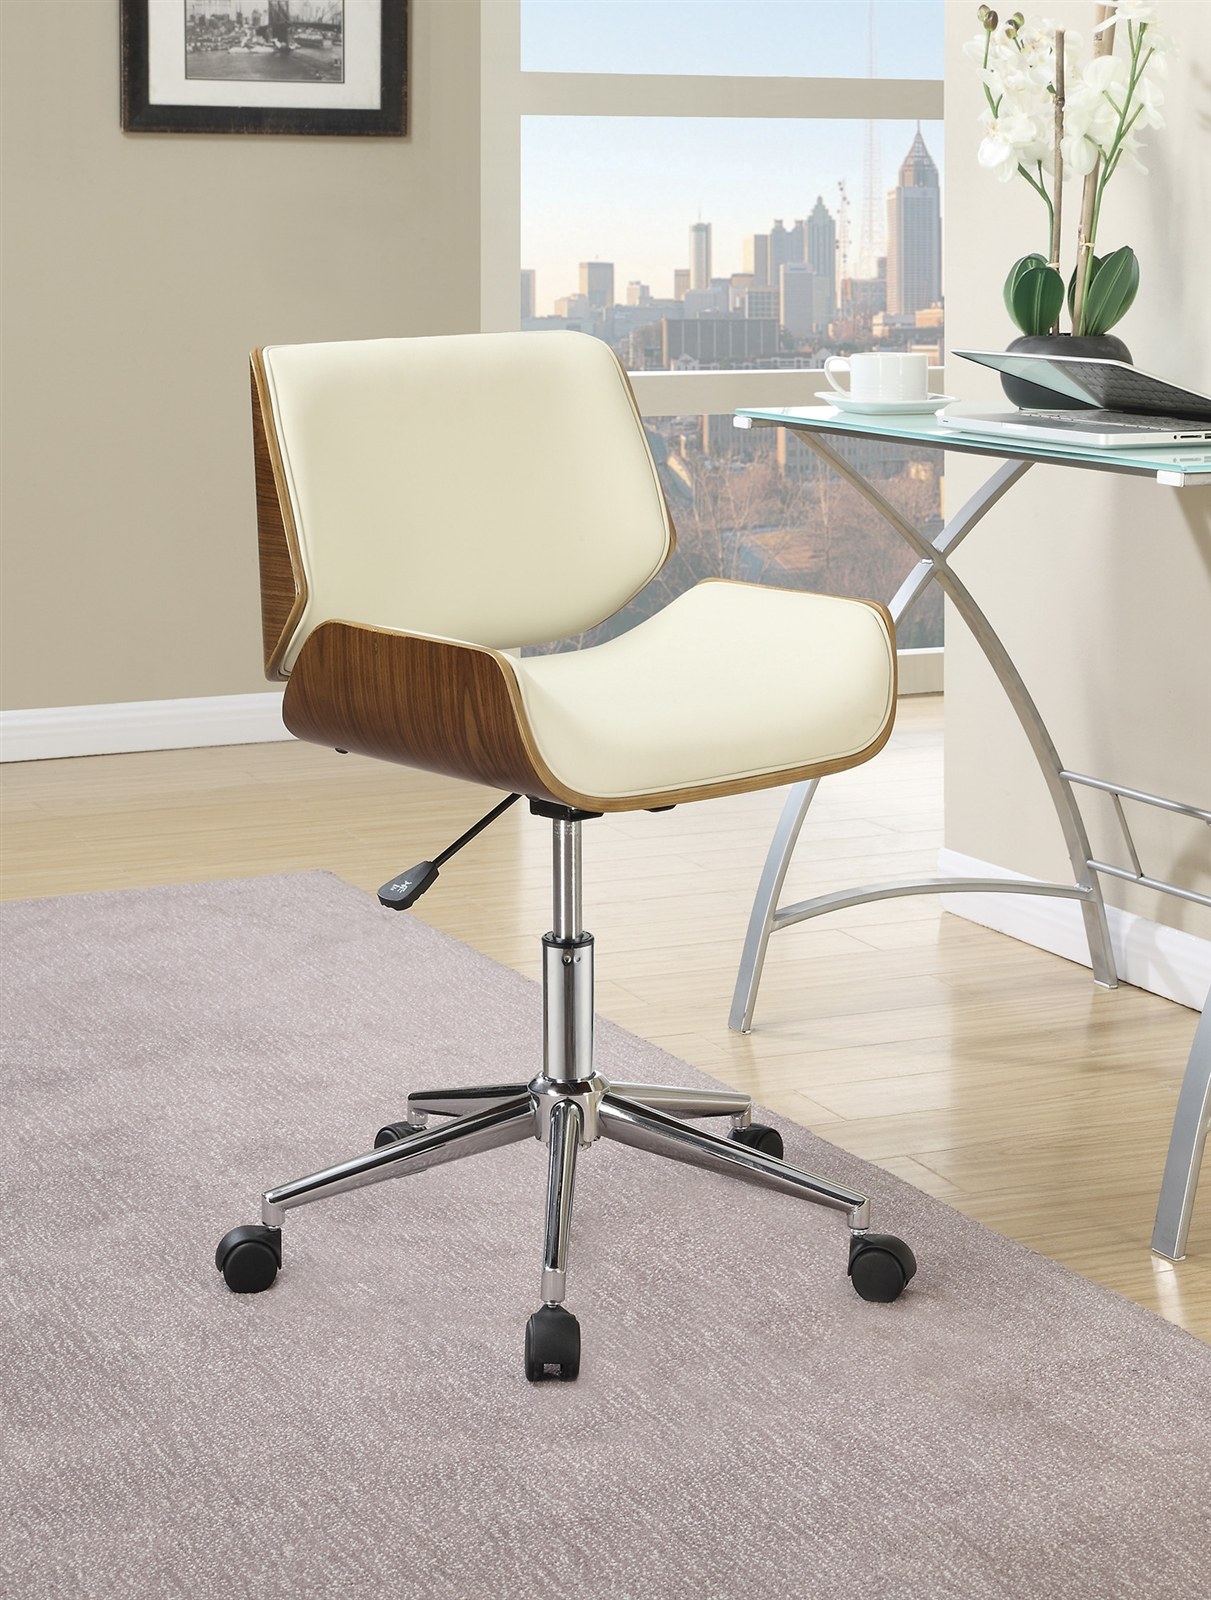 Low Profile Office Chair